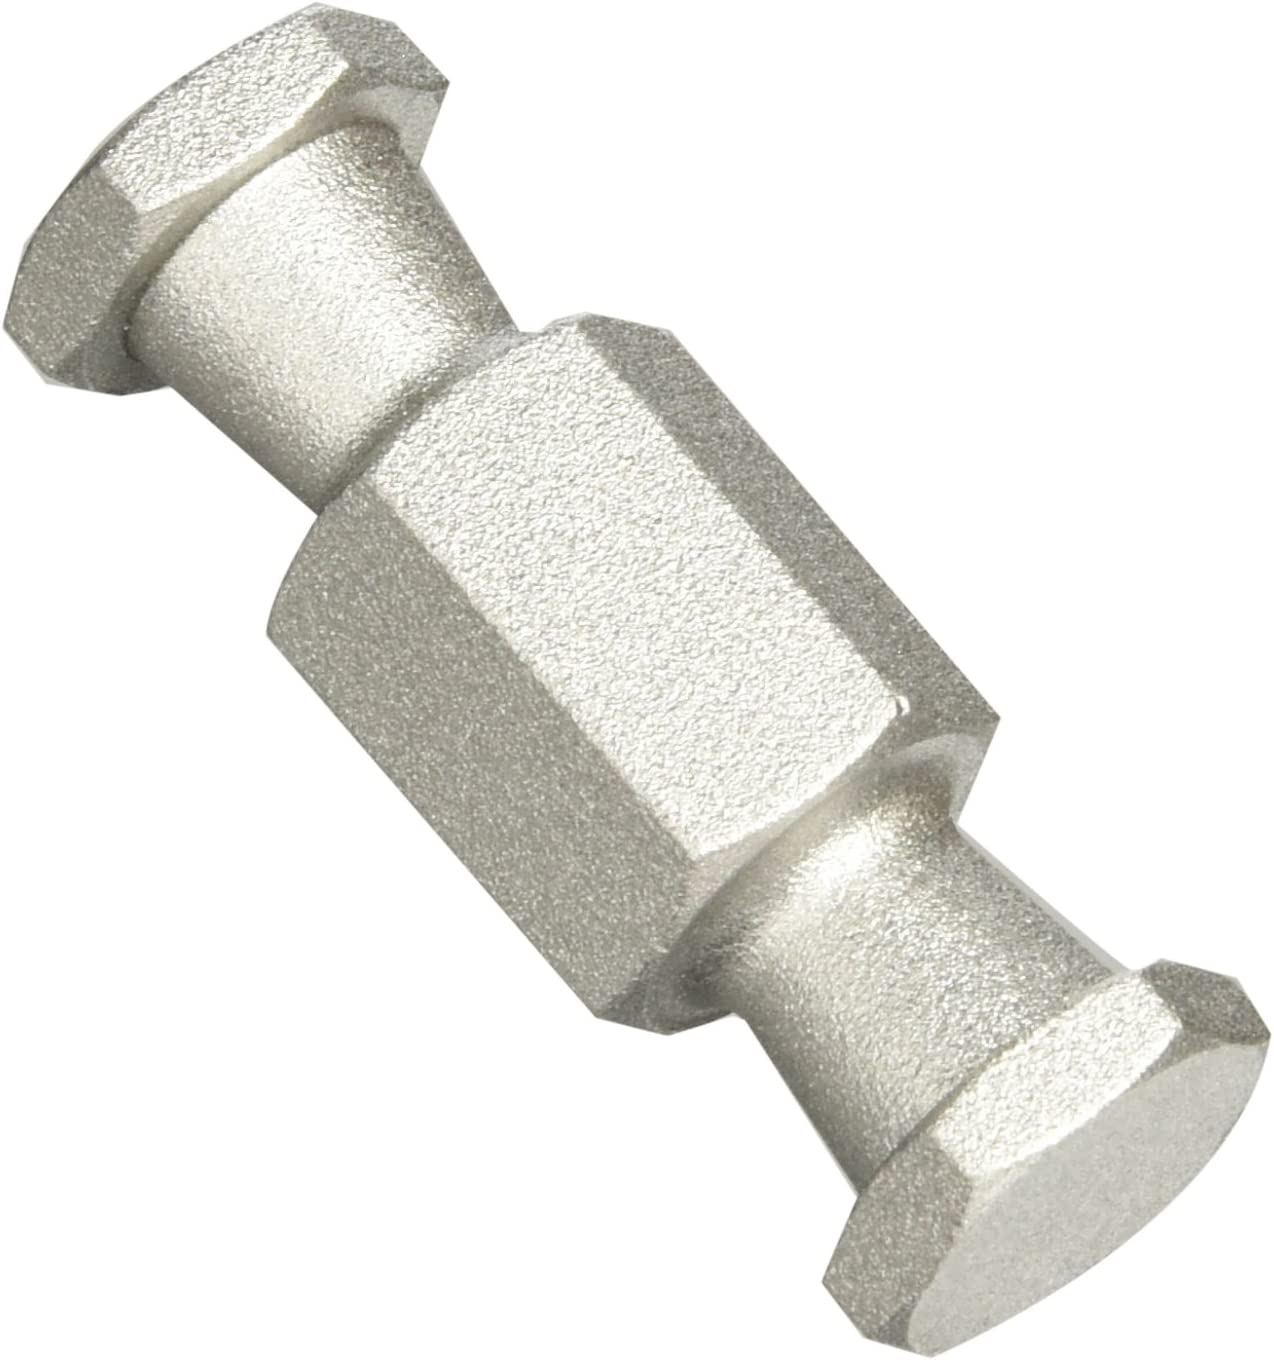 6 Pack Impact Joining Stud for 2 Super Clamps